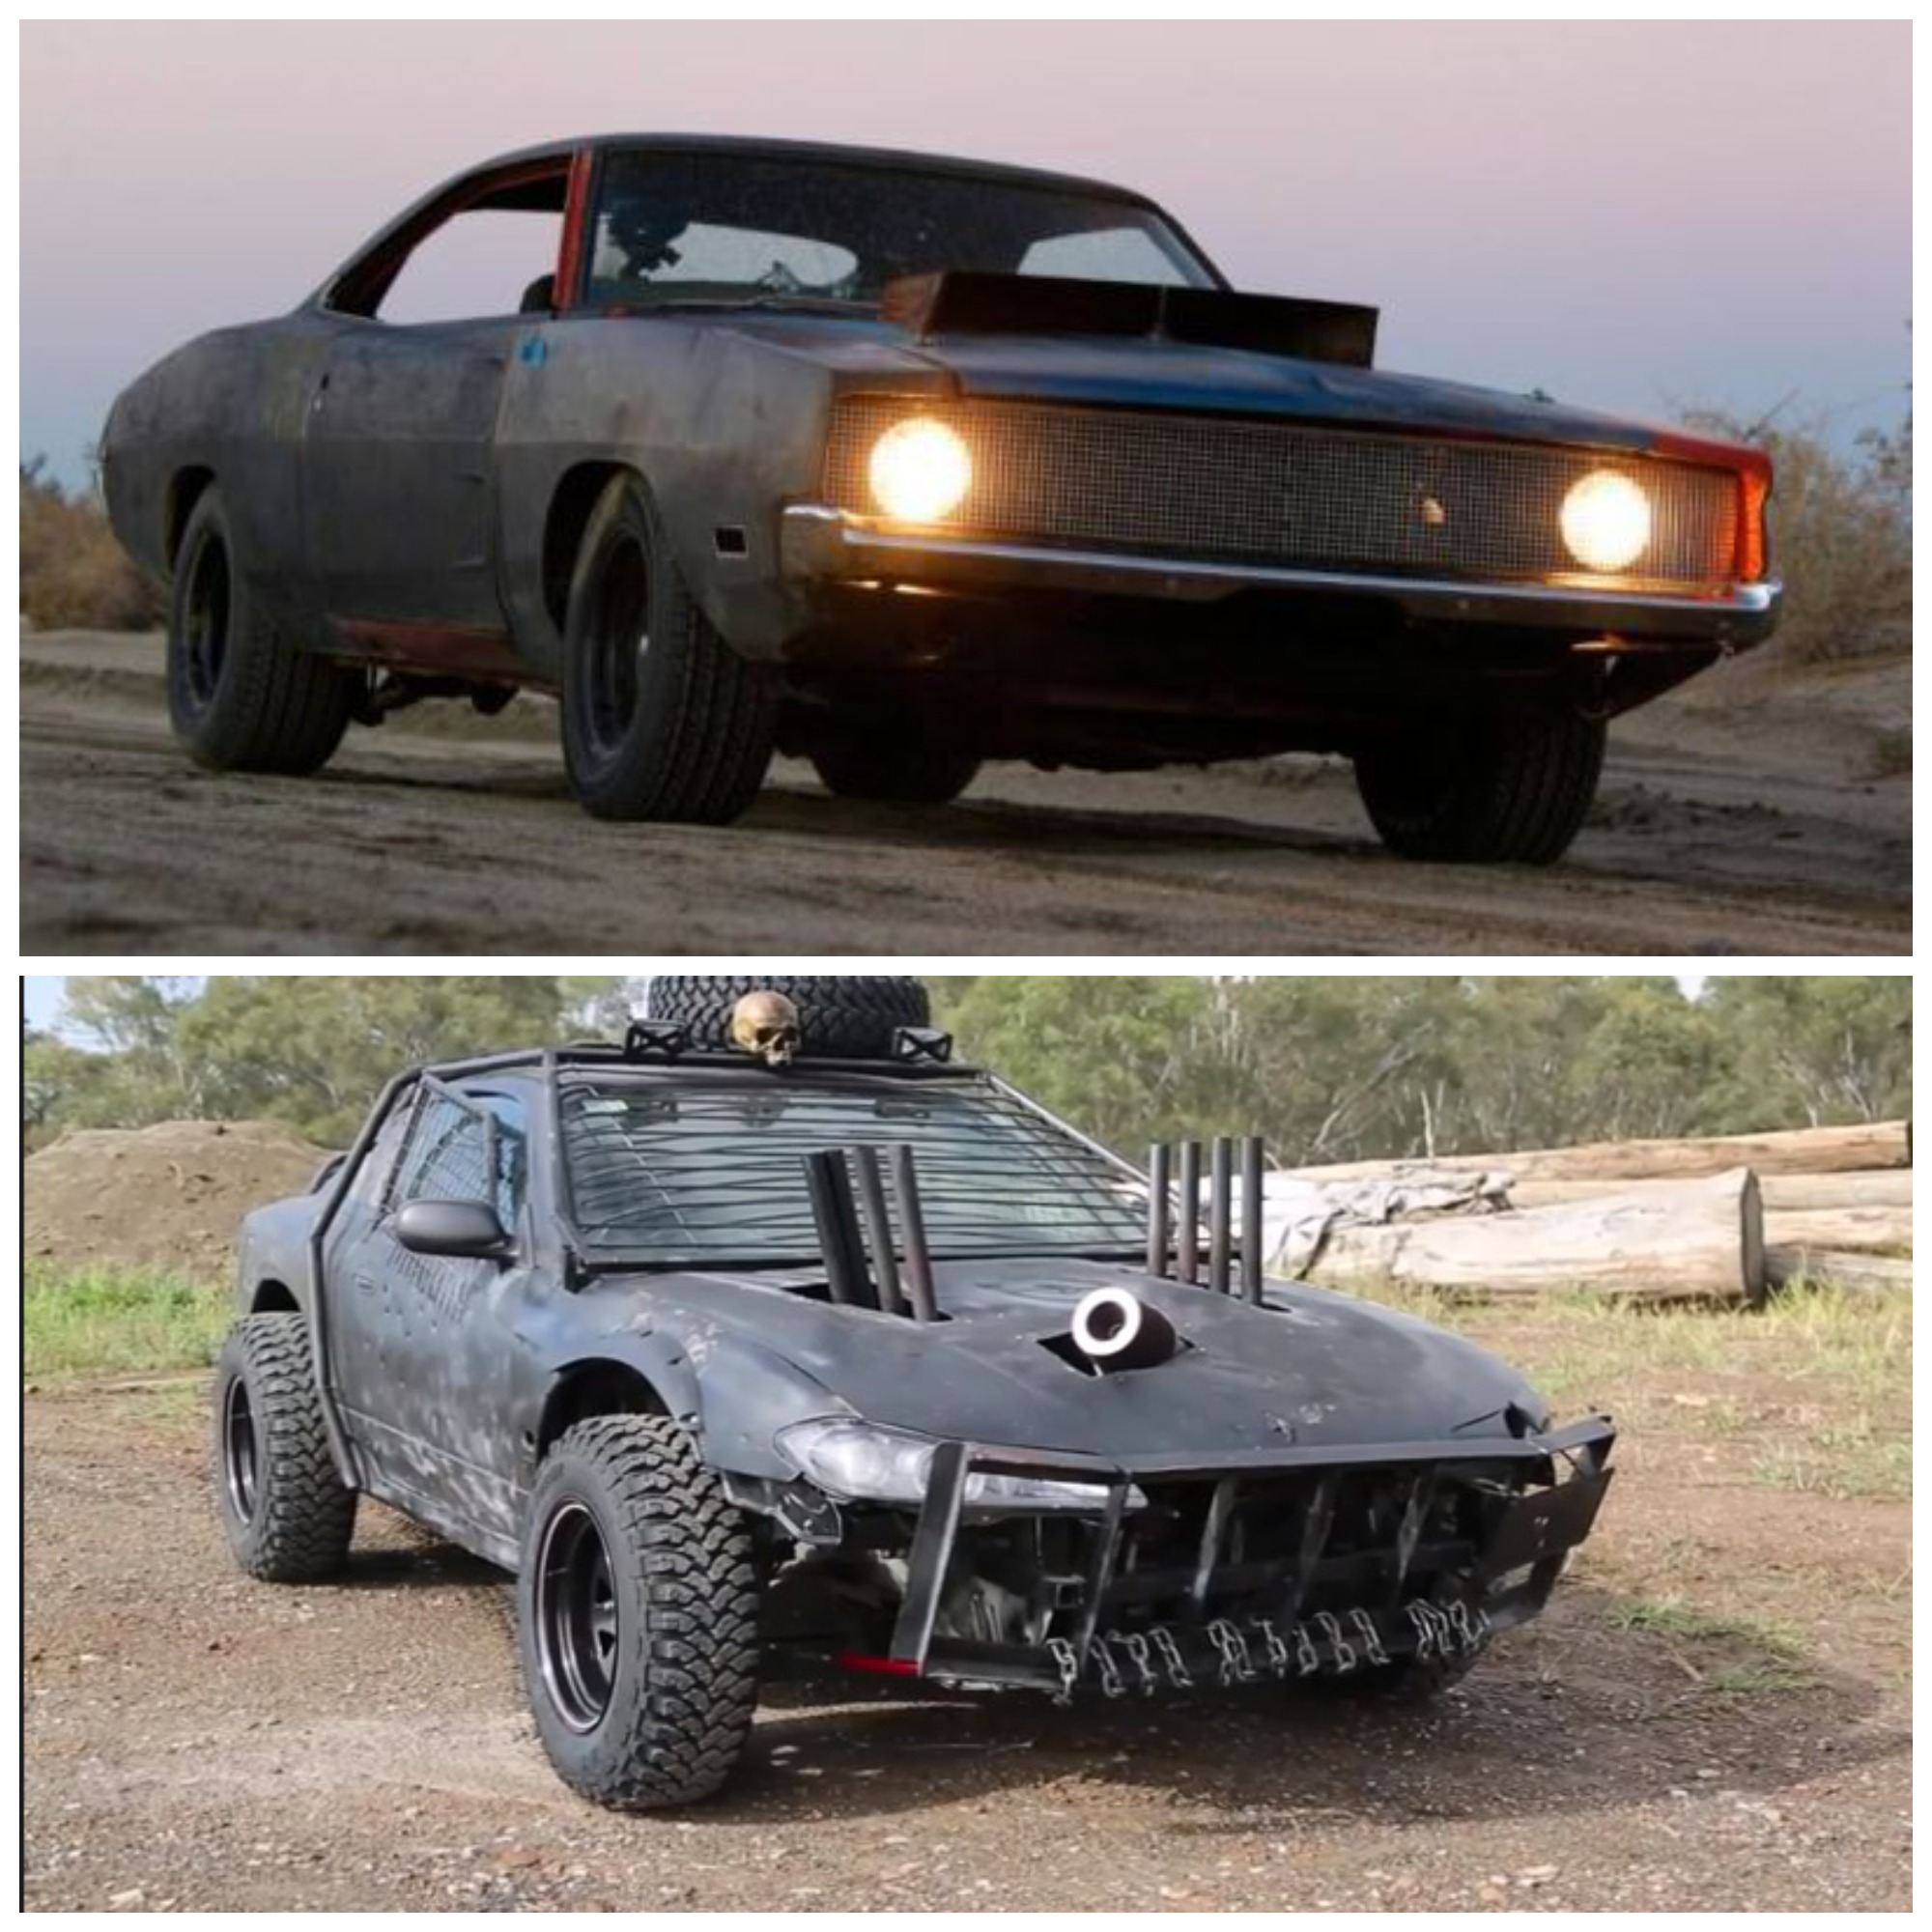 Which One Would You Rather Have? Roadkill's General Mayhem